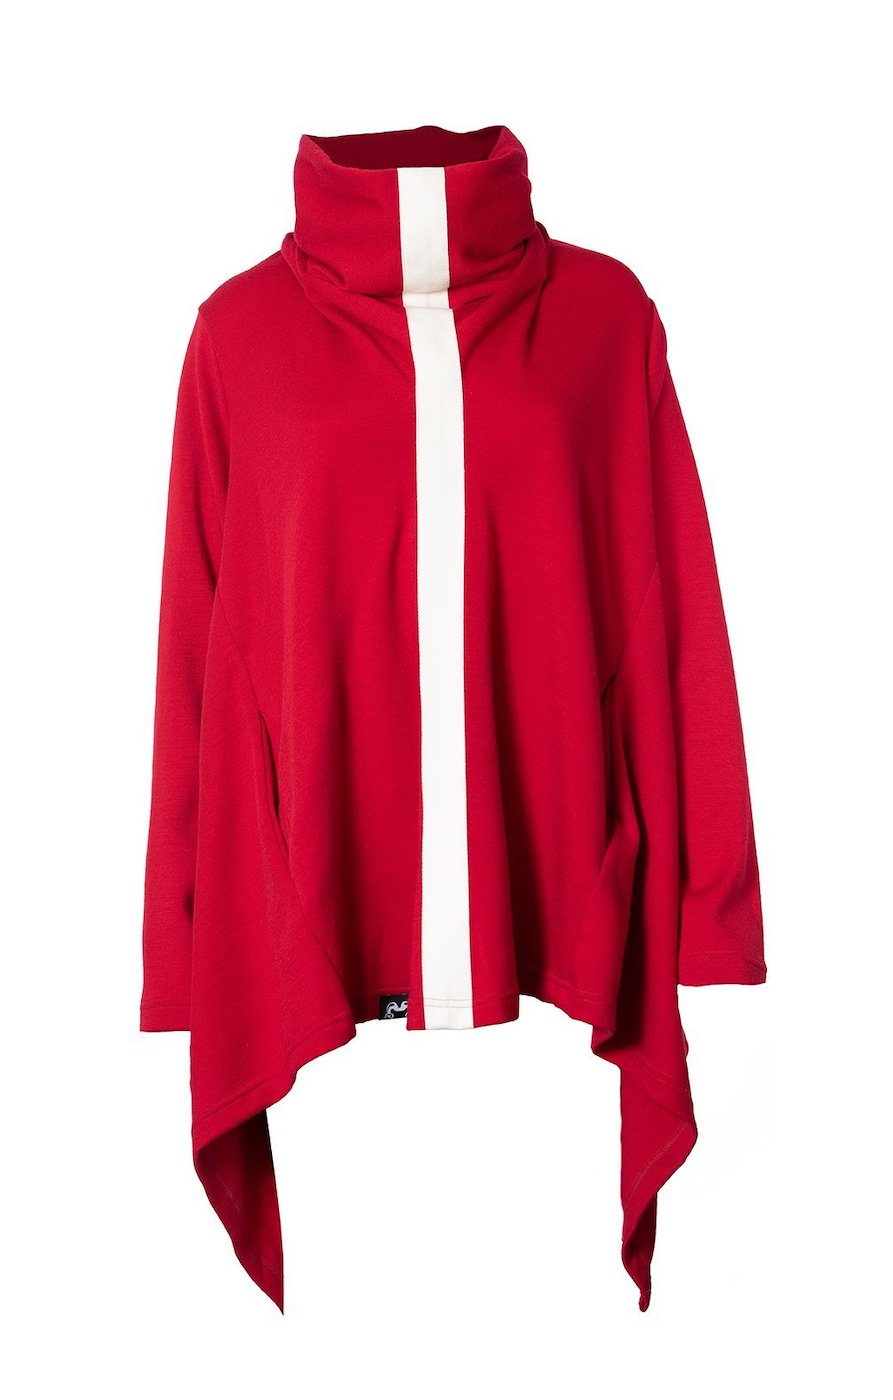 Poncho | Red & Ivory | True Fleece New Zealand